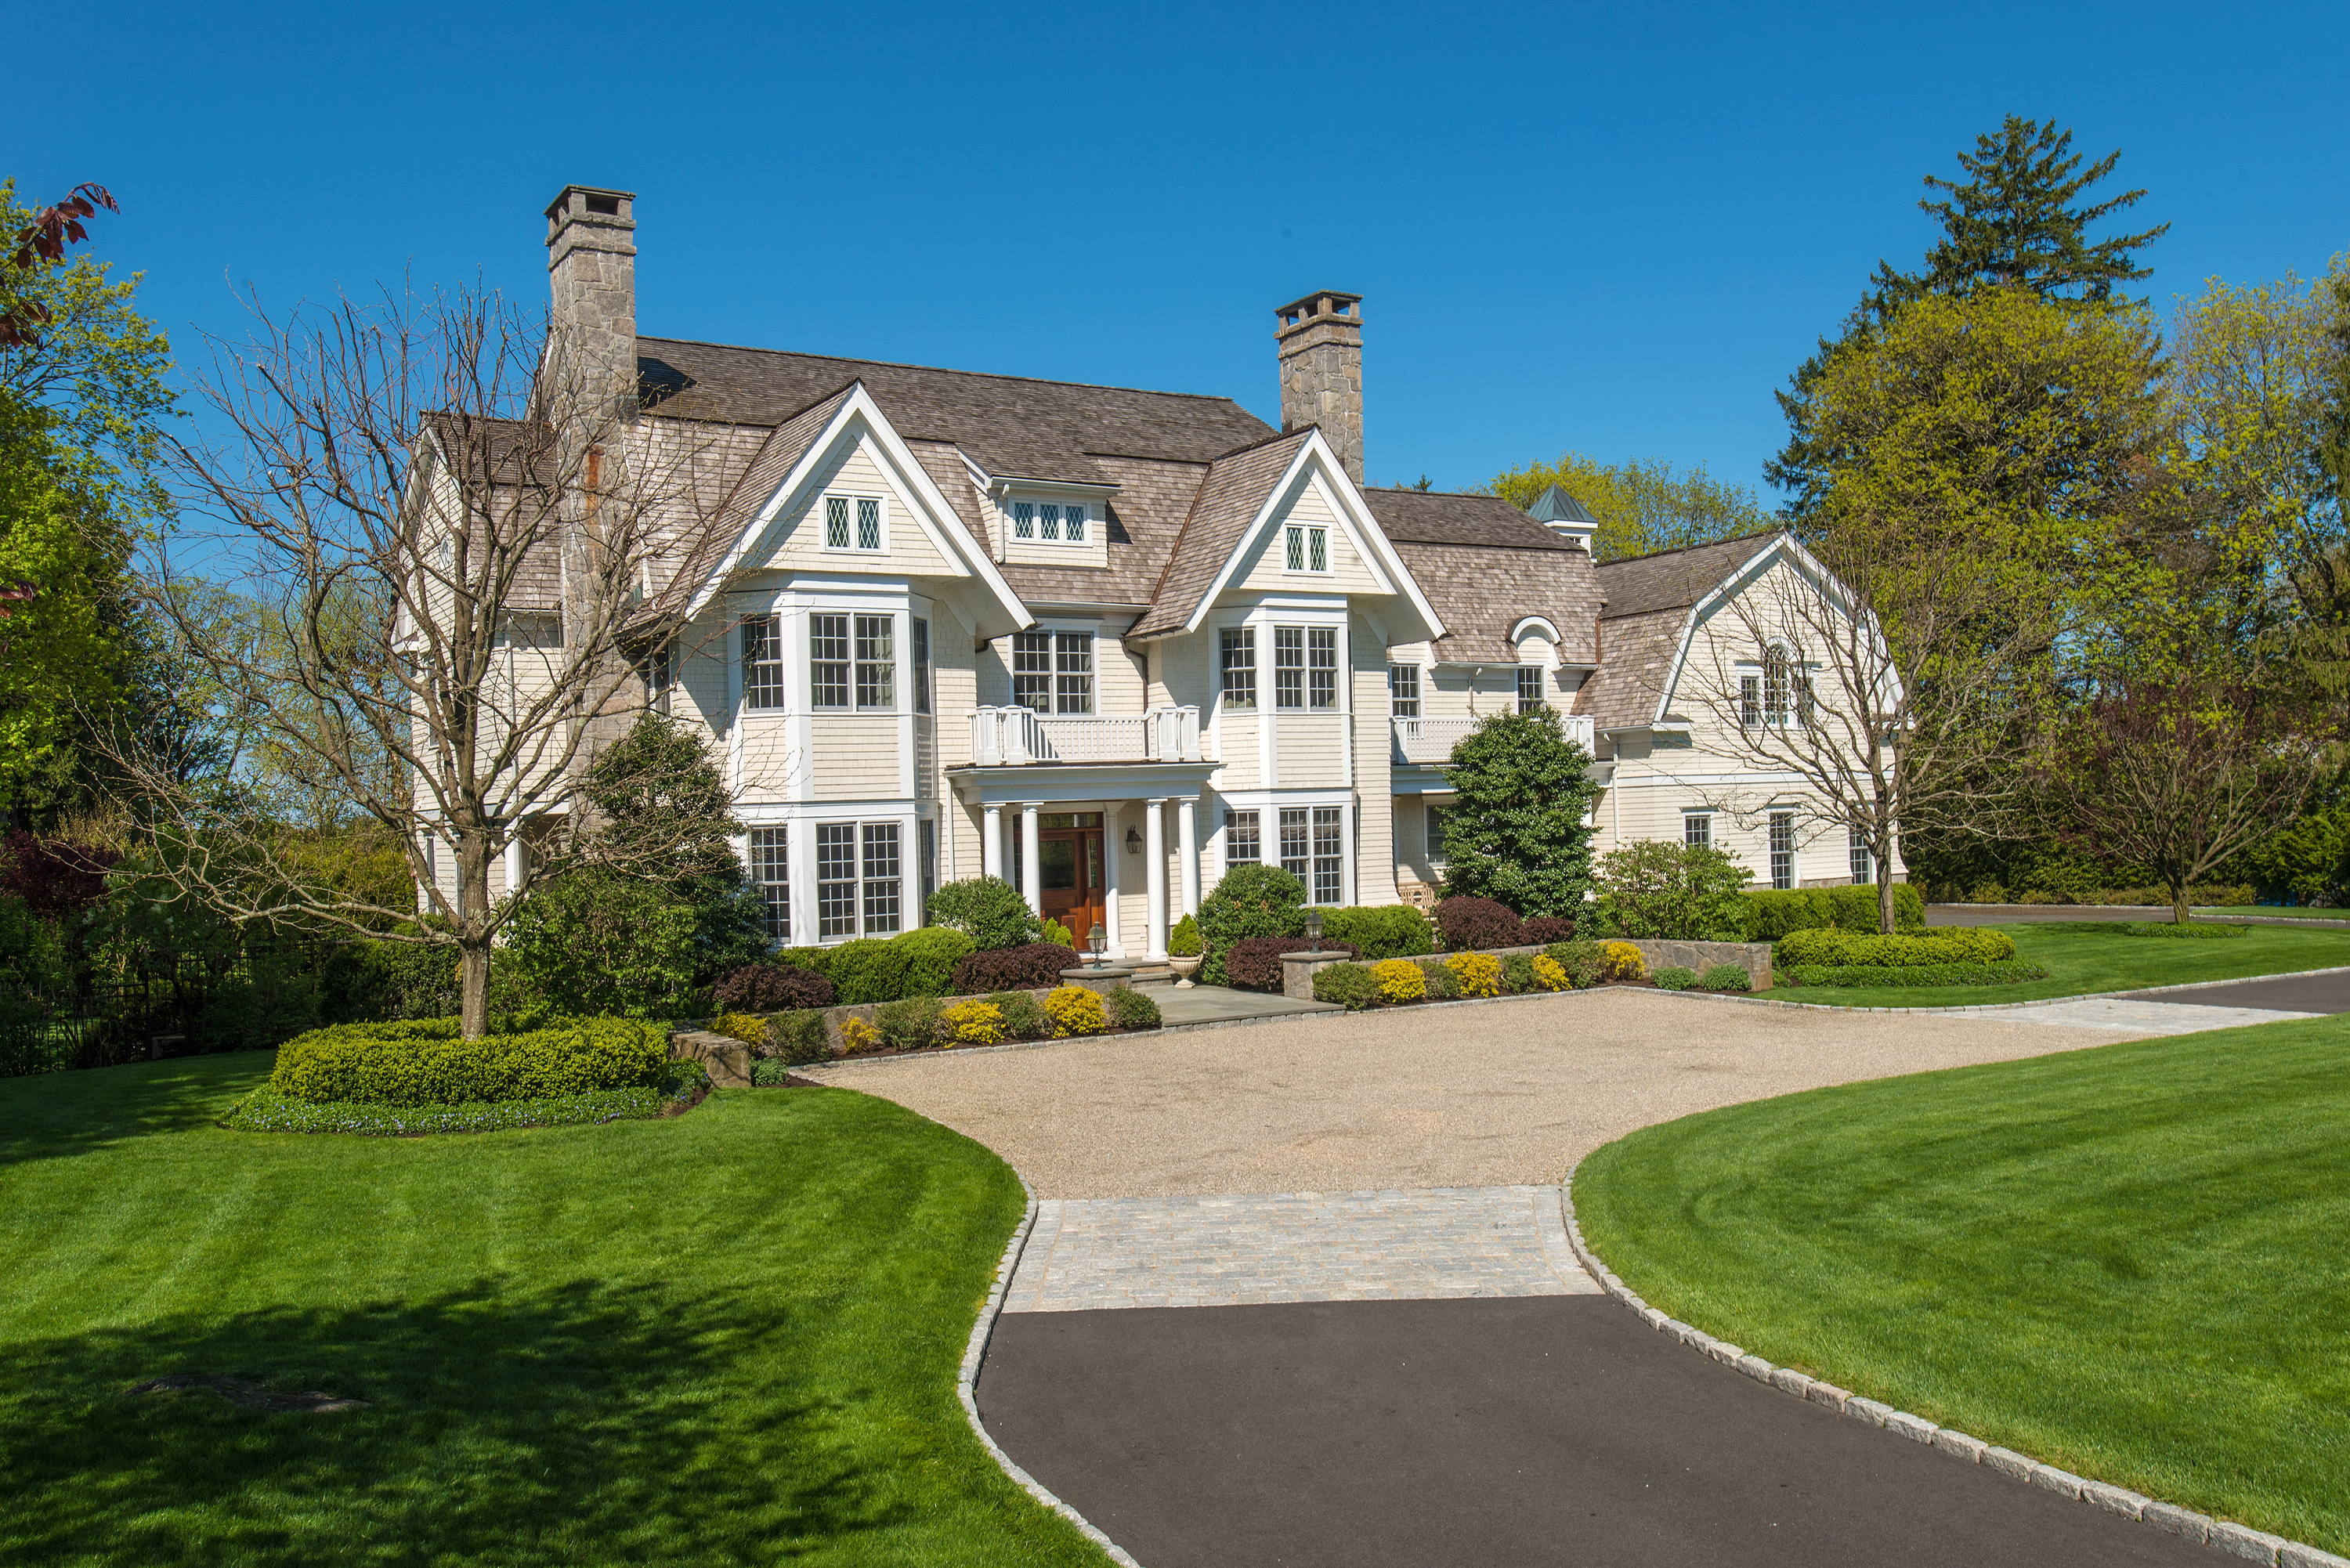 Casa unifamiliar en venta en/de 92 Rosebrook Road, New Canaan, Connecticut ,06840  , EUA